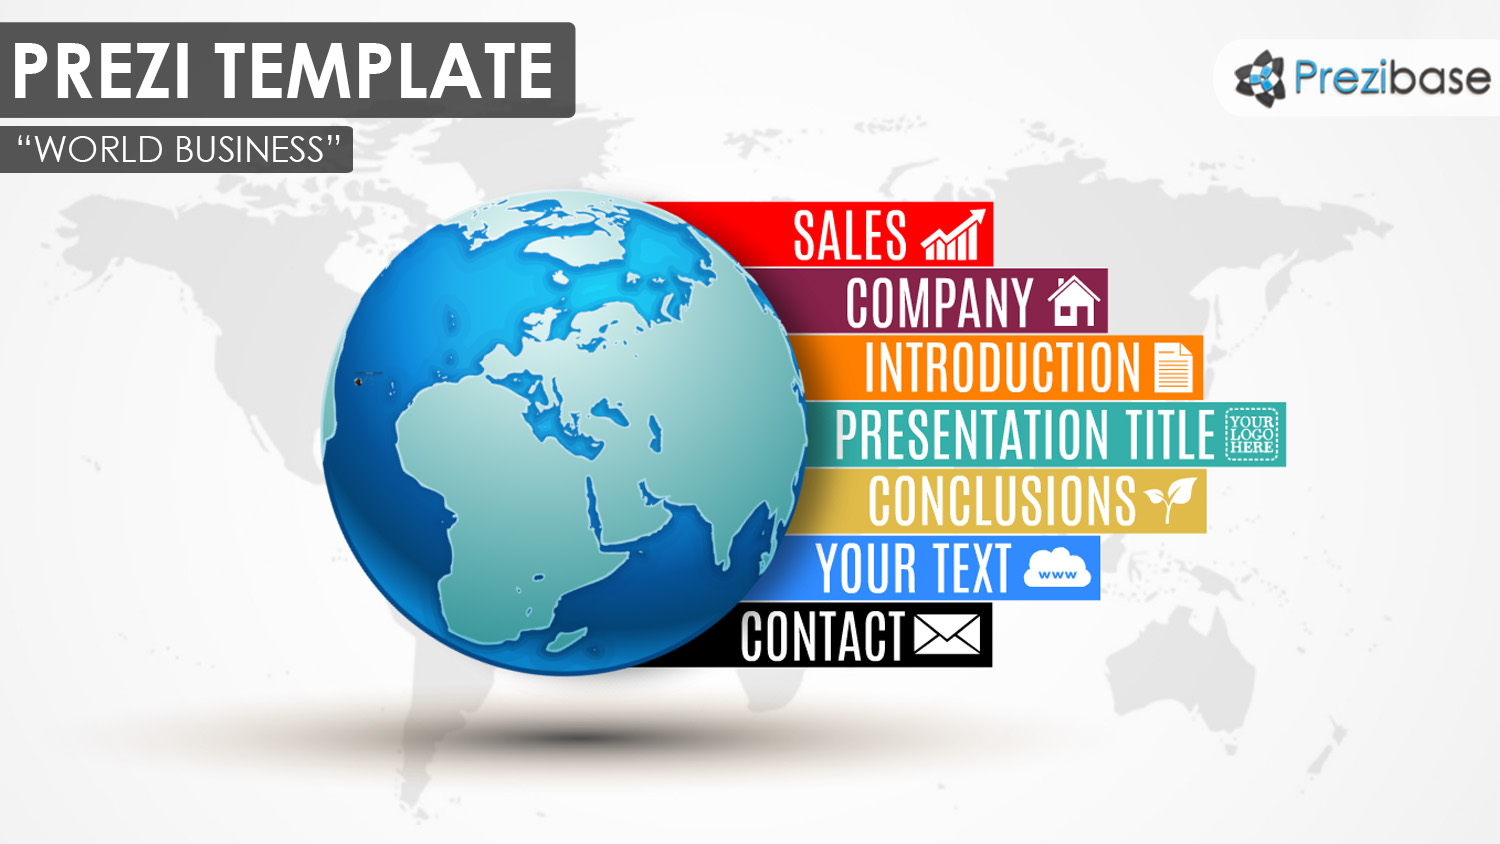 Business prezi templates prezibase for Global design company